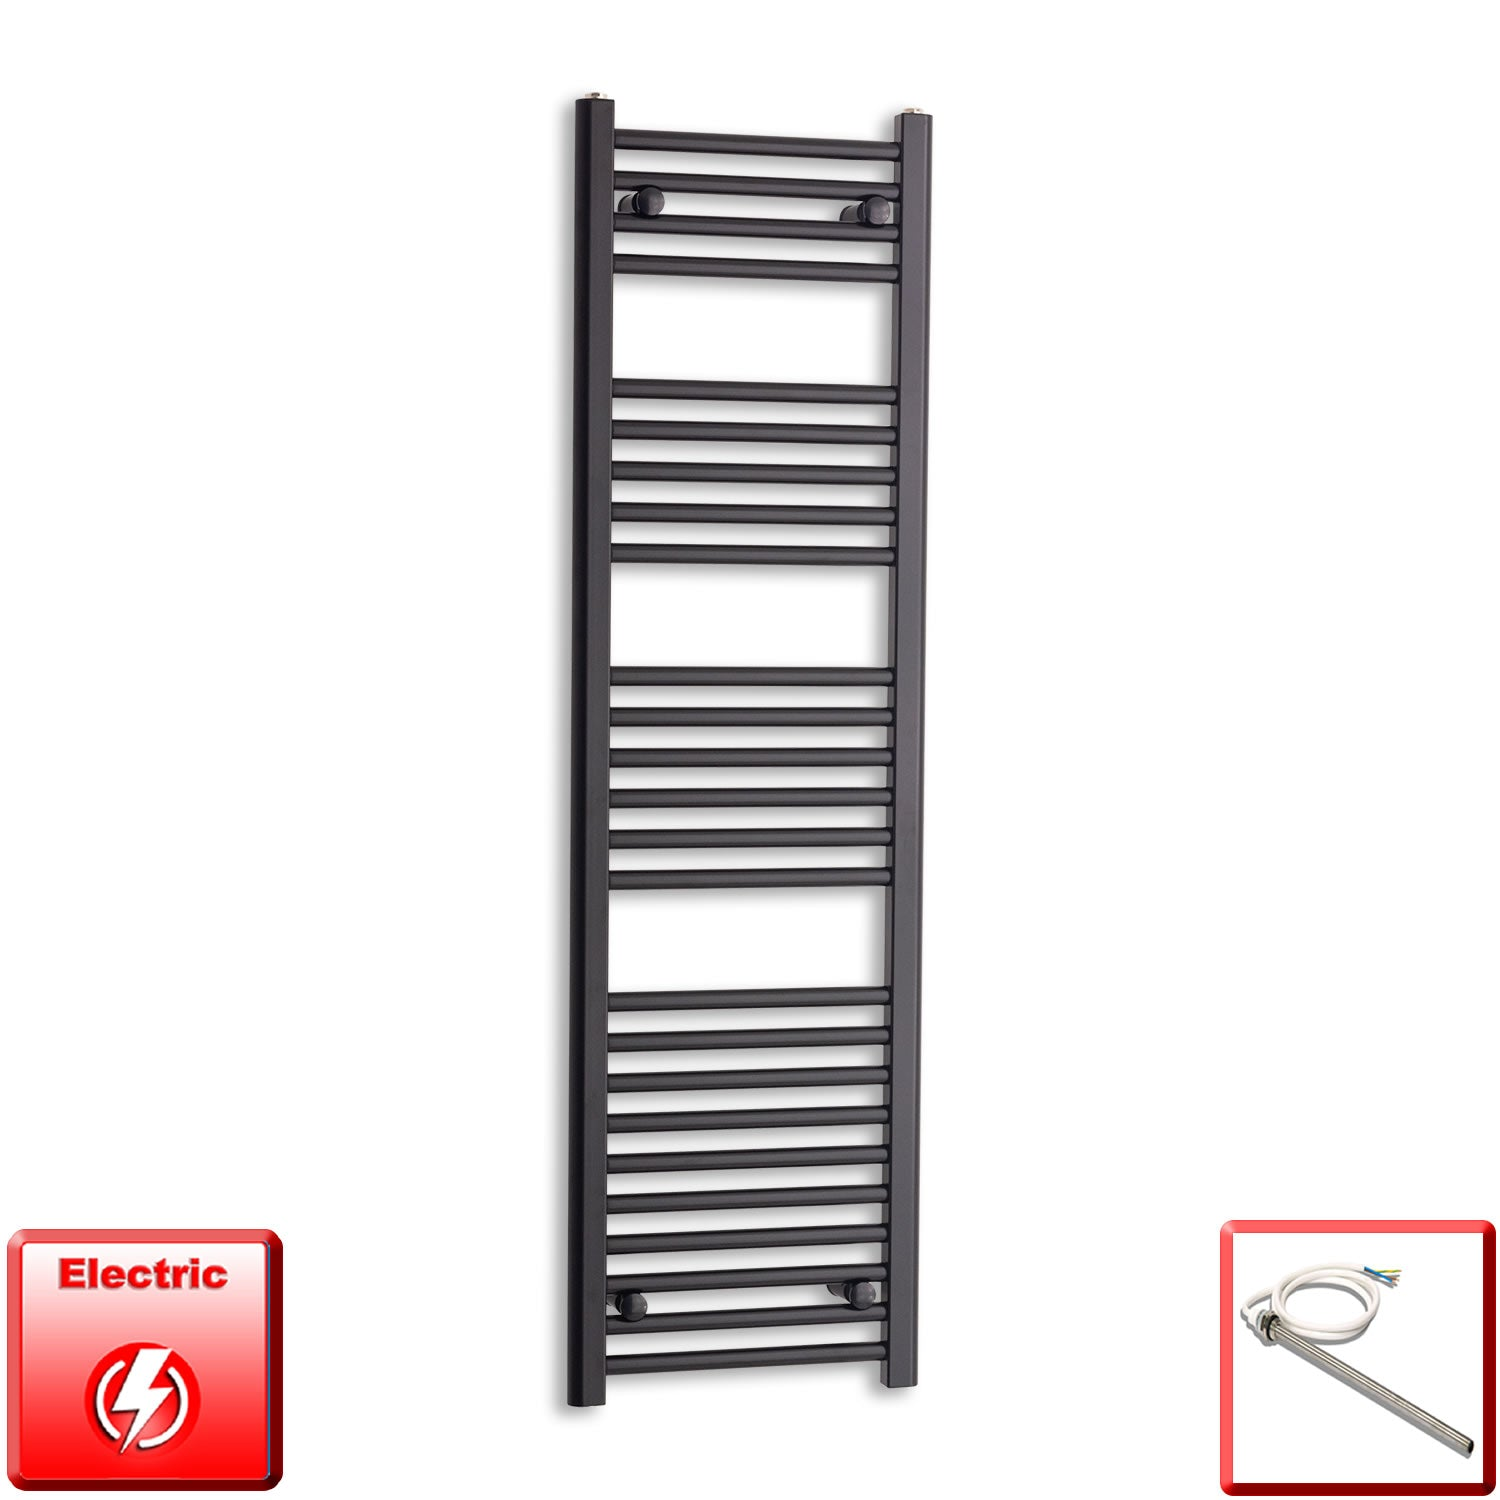 400mm Wide 1400mm High Pre-Filled Black Electric Towel Rail Radiator With Single Heat Element